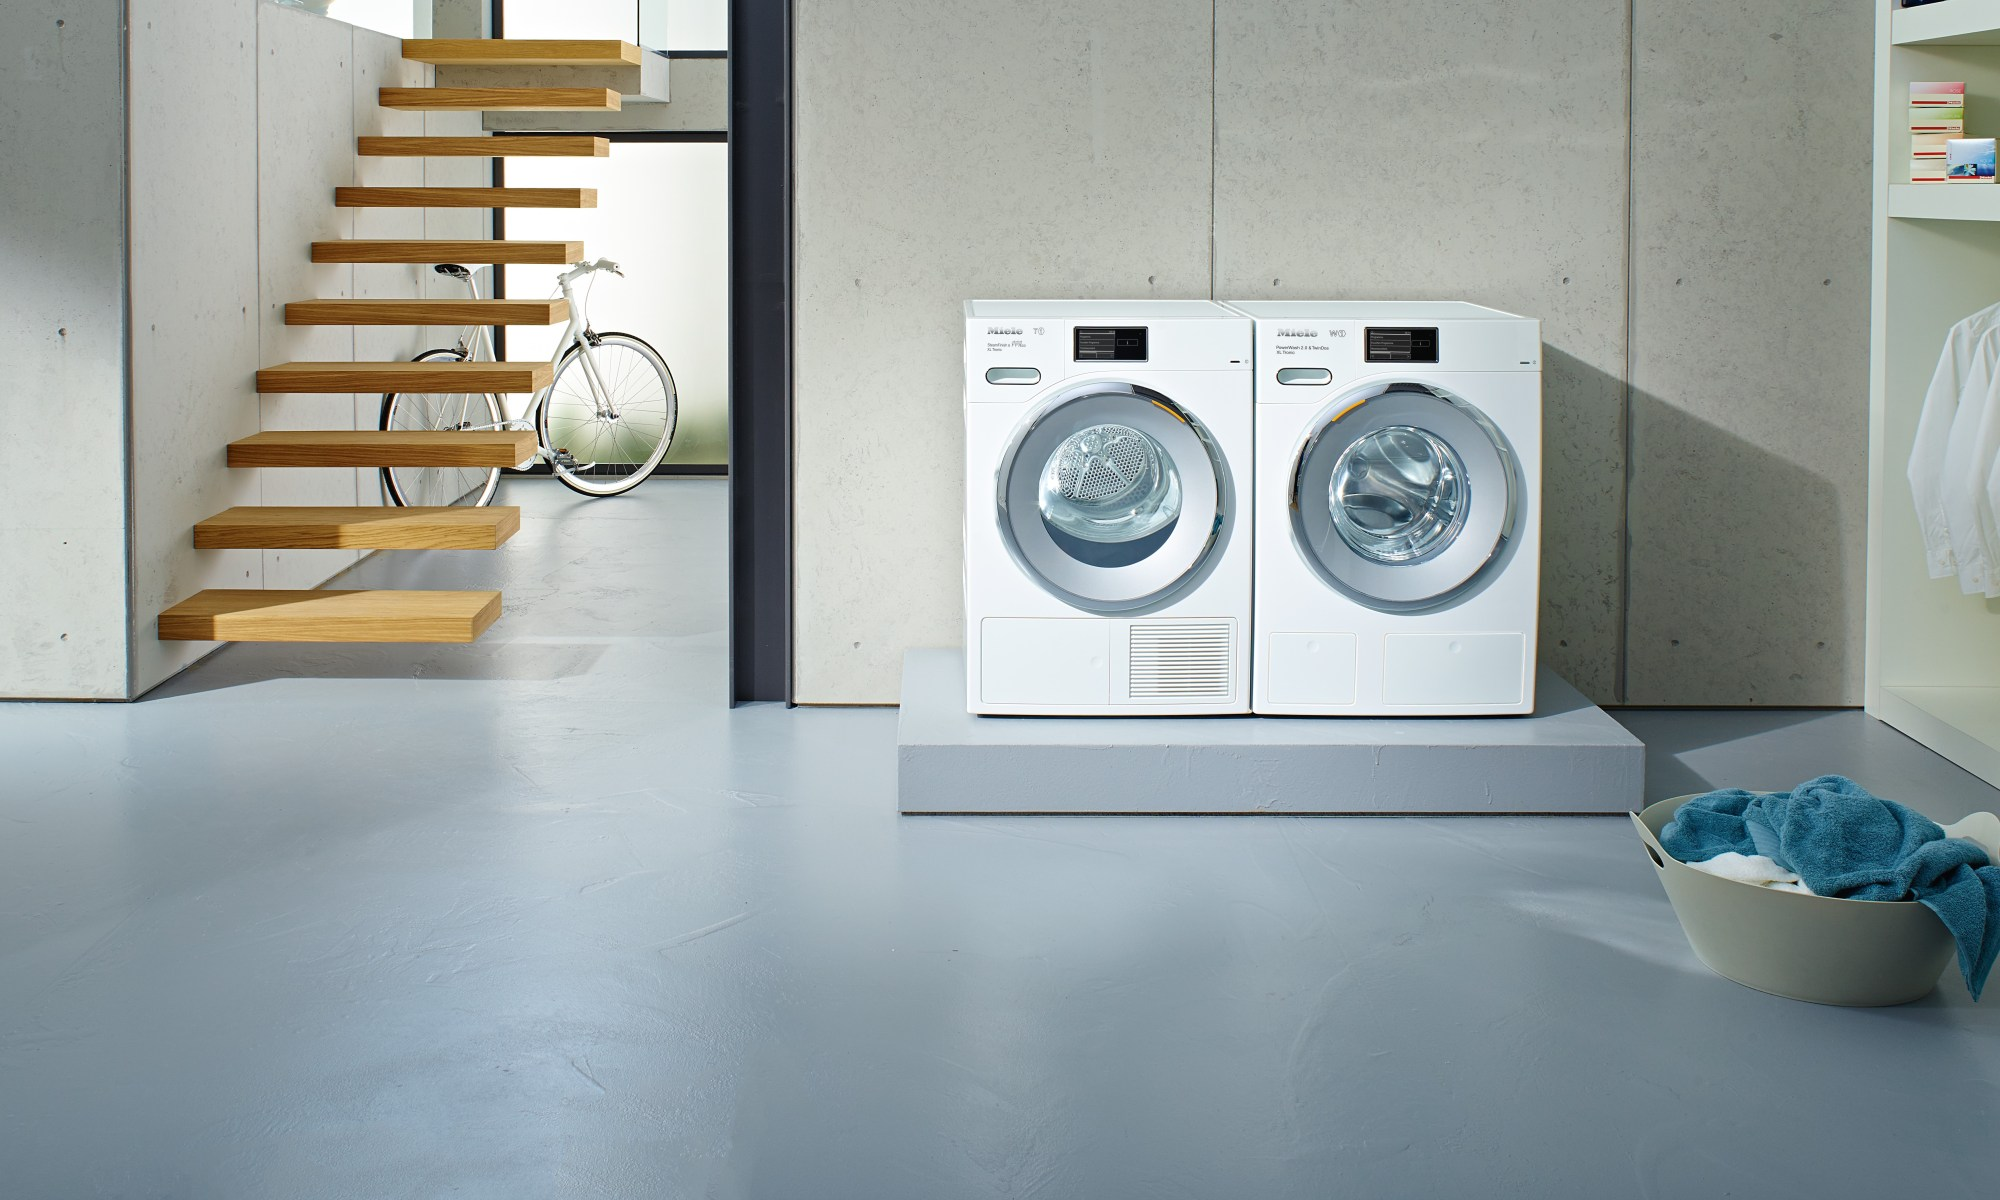 Miele laundry appliances